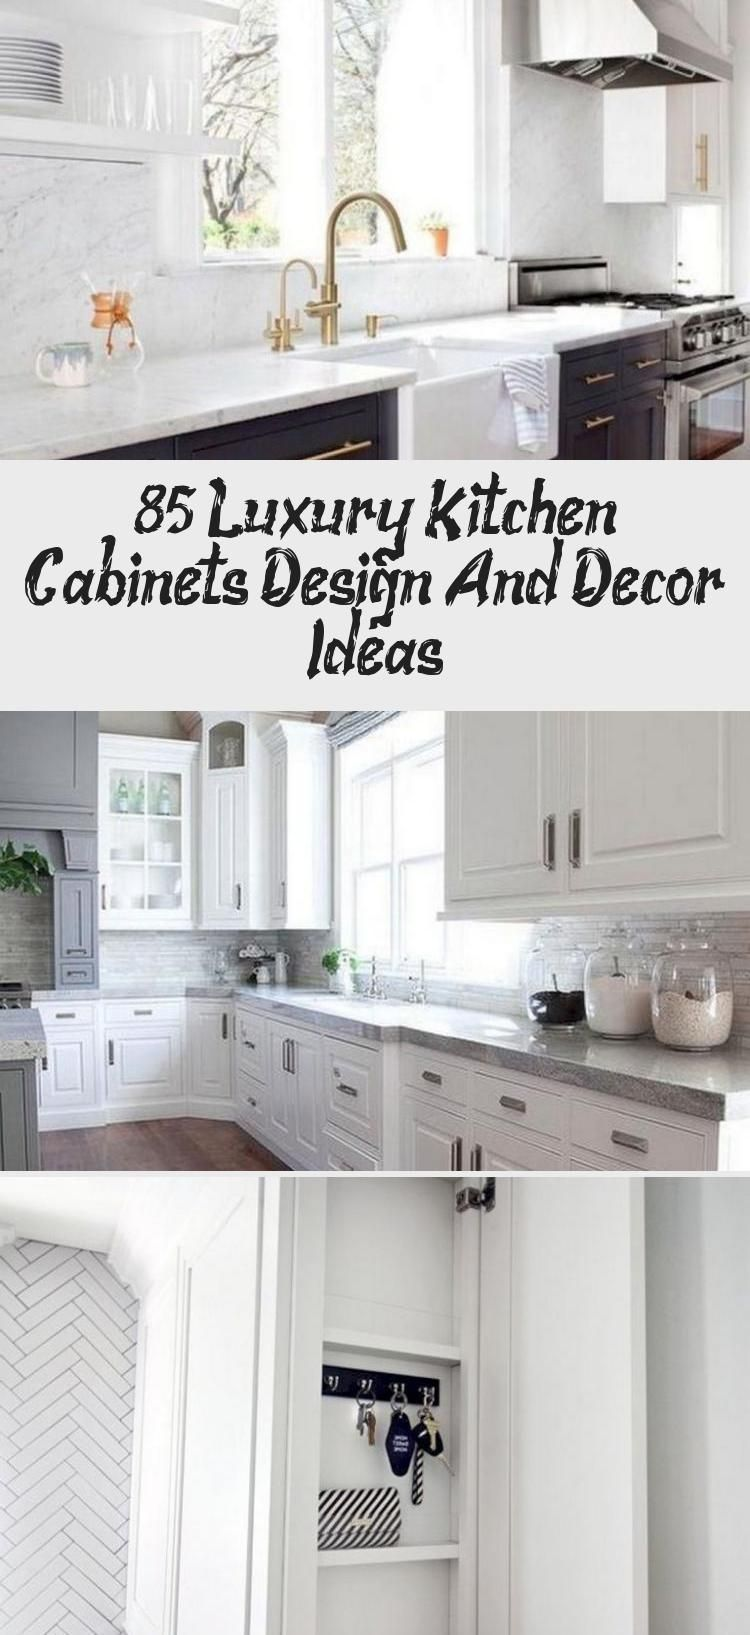 85 Luxury Design And Furniture Ideas For Kitchen Cabinets Kitchen Etk Cabin Cabin Luxury Kitchen Cabinets Kitchen Cabinet Design Cheap Kitchen Cabinets